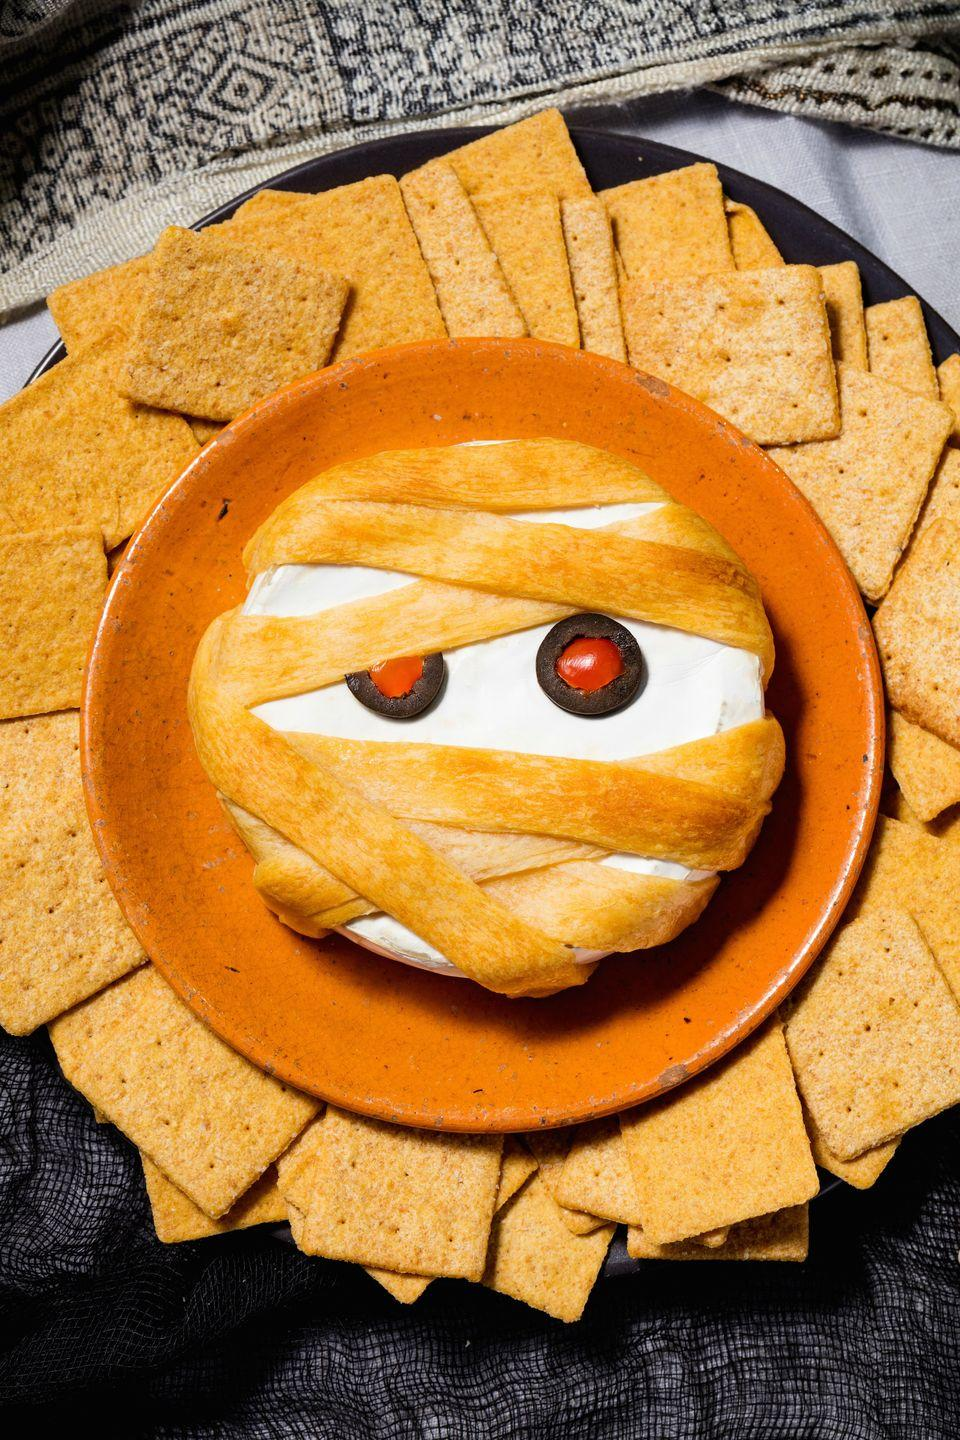 """<p>Have you ever met someone NOT excited to see brie at a party?!</p><p>Get the recipe from <a href=""""https://www.delish.com/holiday-recipes/halloween/recipes/a49347/mummy-brie-recipe/"""" rel=""""nofollow noopener"""" target=""""_blank"""" data-ylk=""""slk:Delish"""" class=""""link rapid-noclick-resp"""">Delish</a>.</p>"""